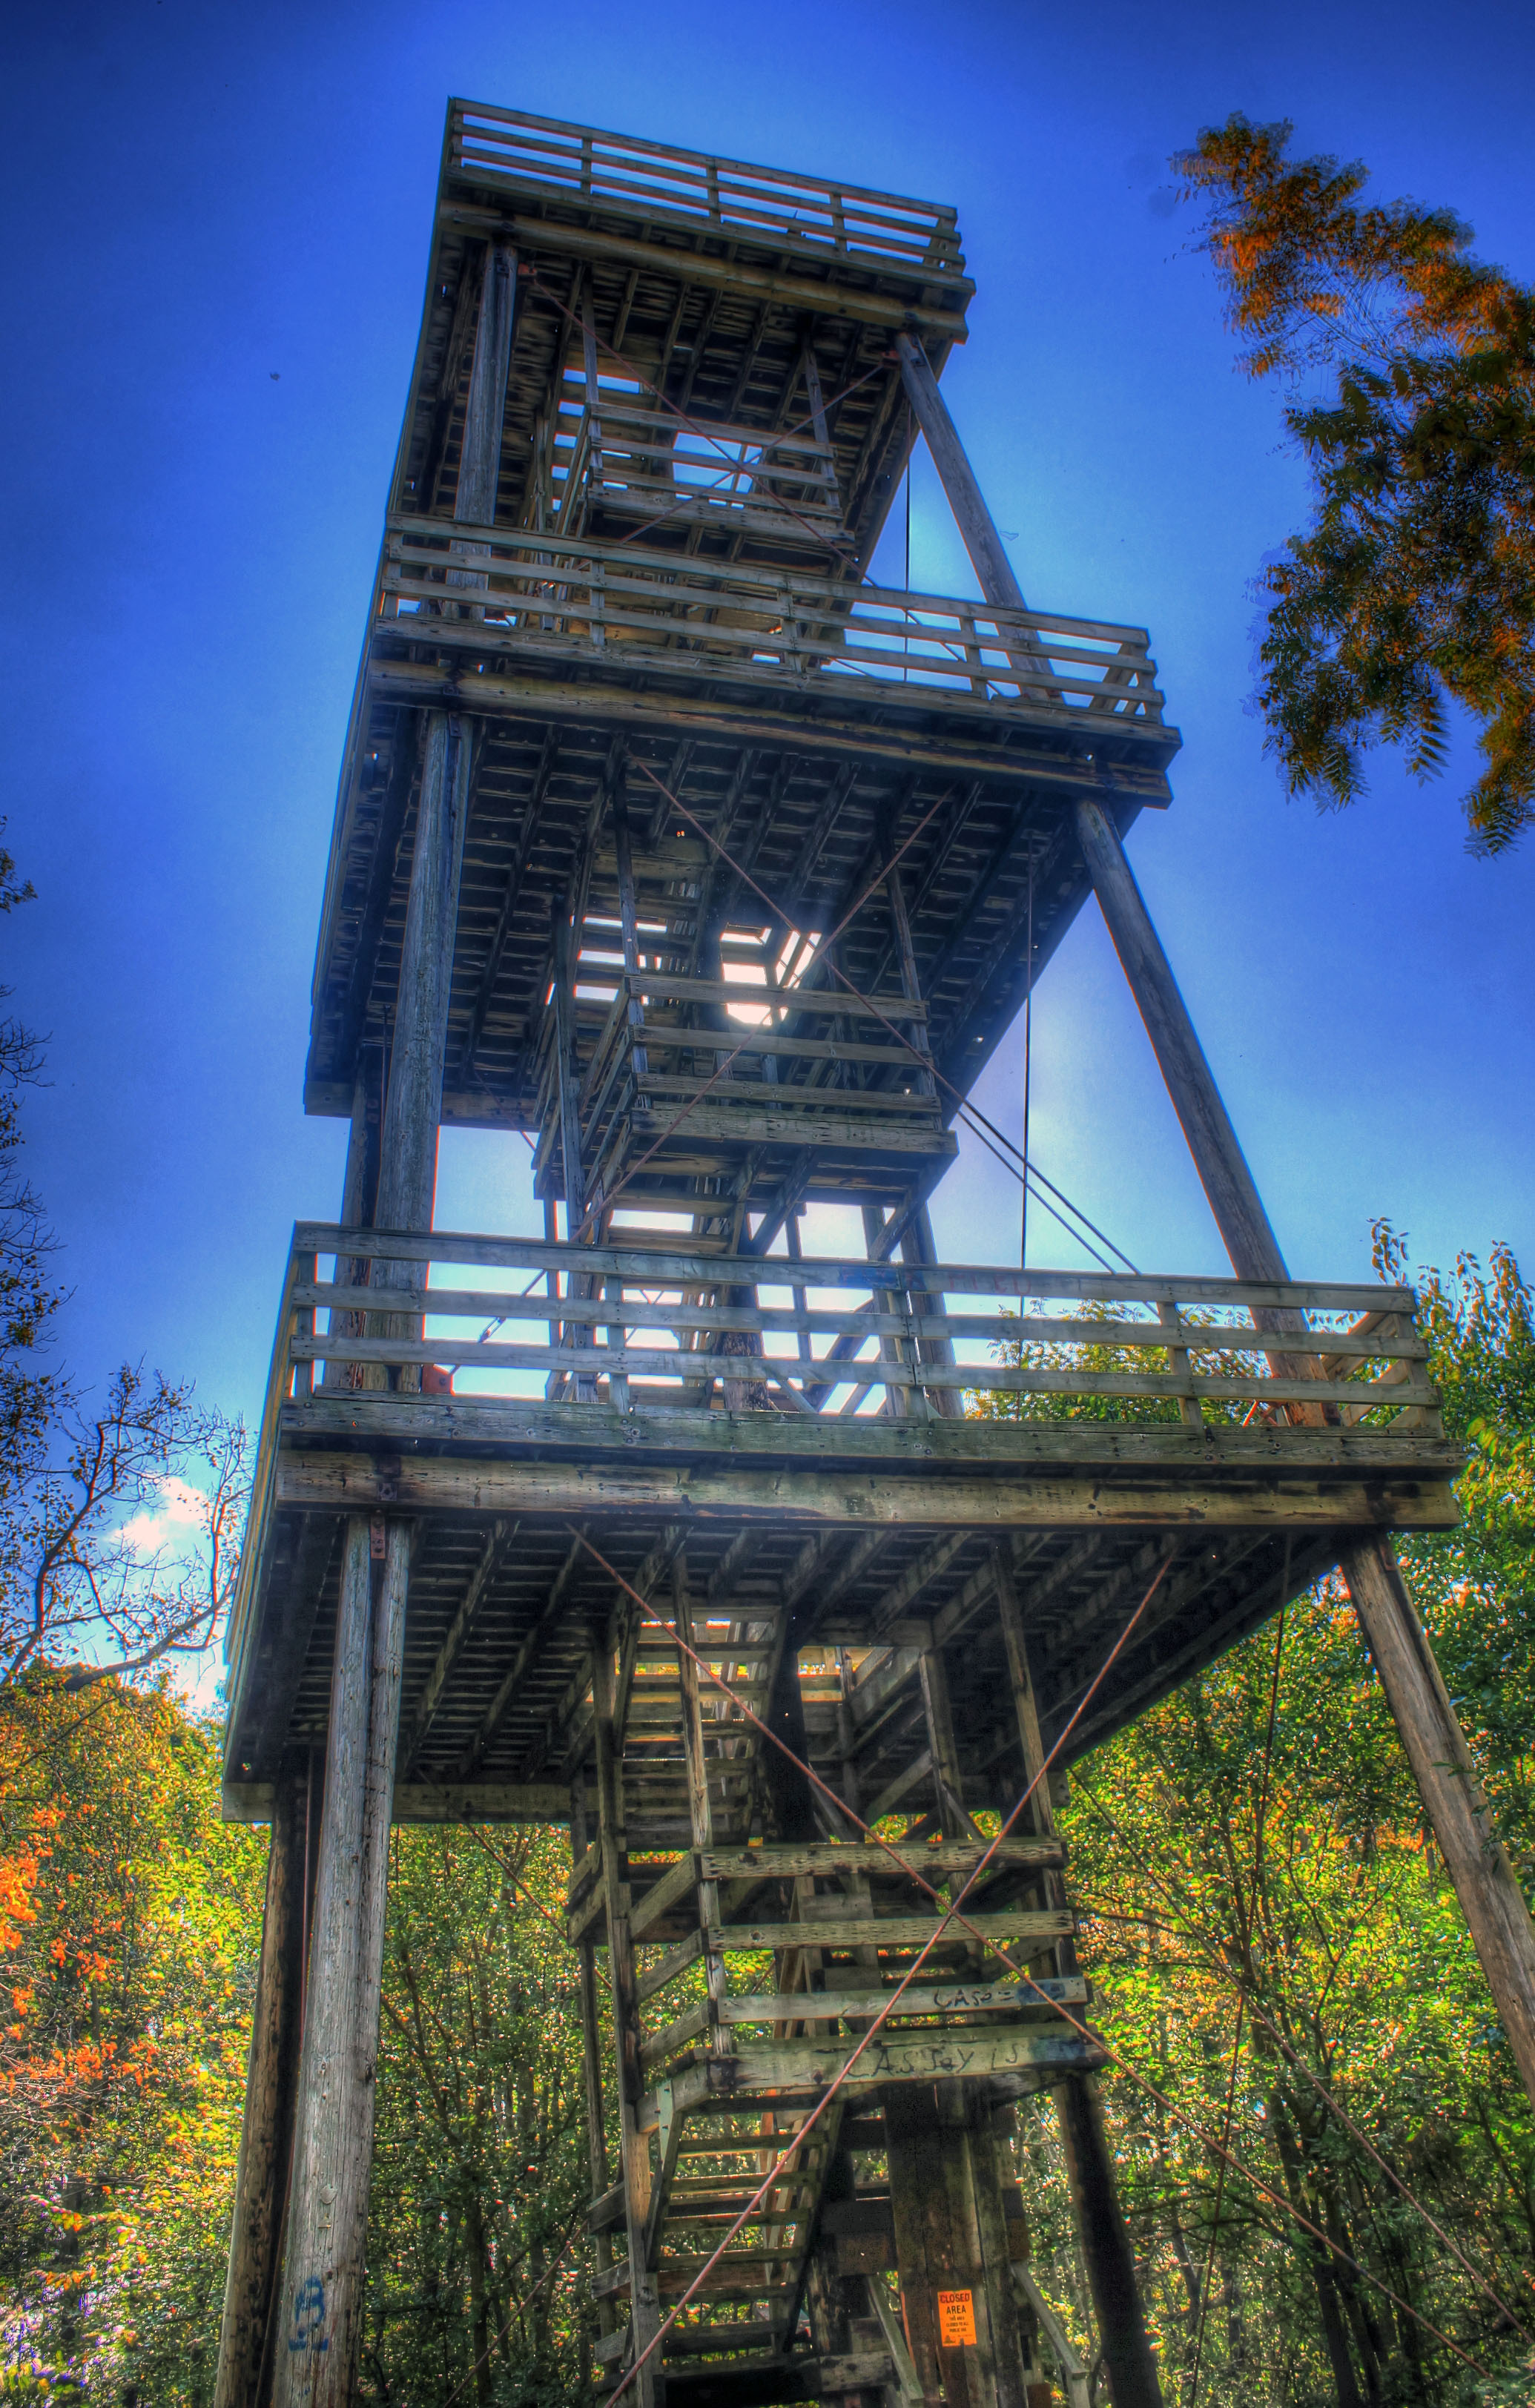 The Observation Tower At Belmont Mounds State Park